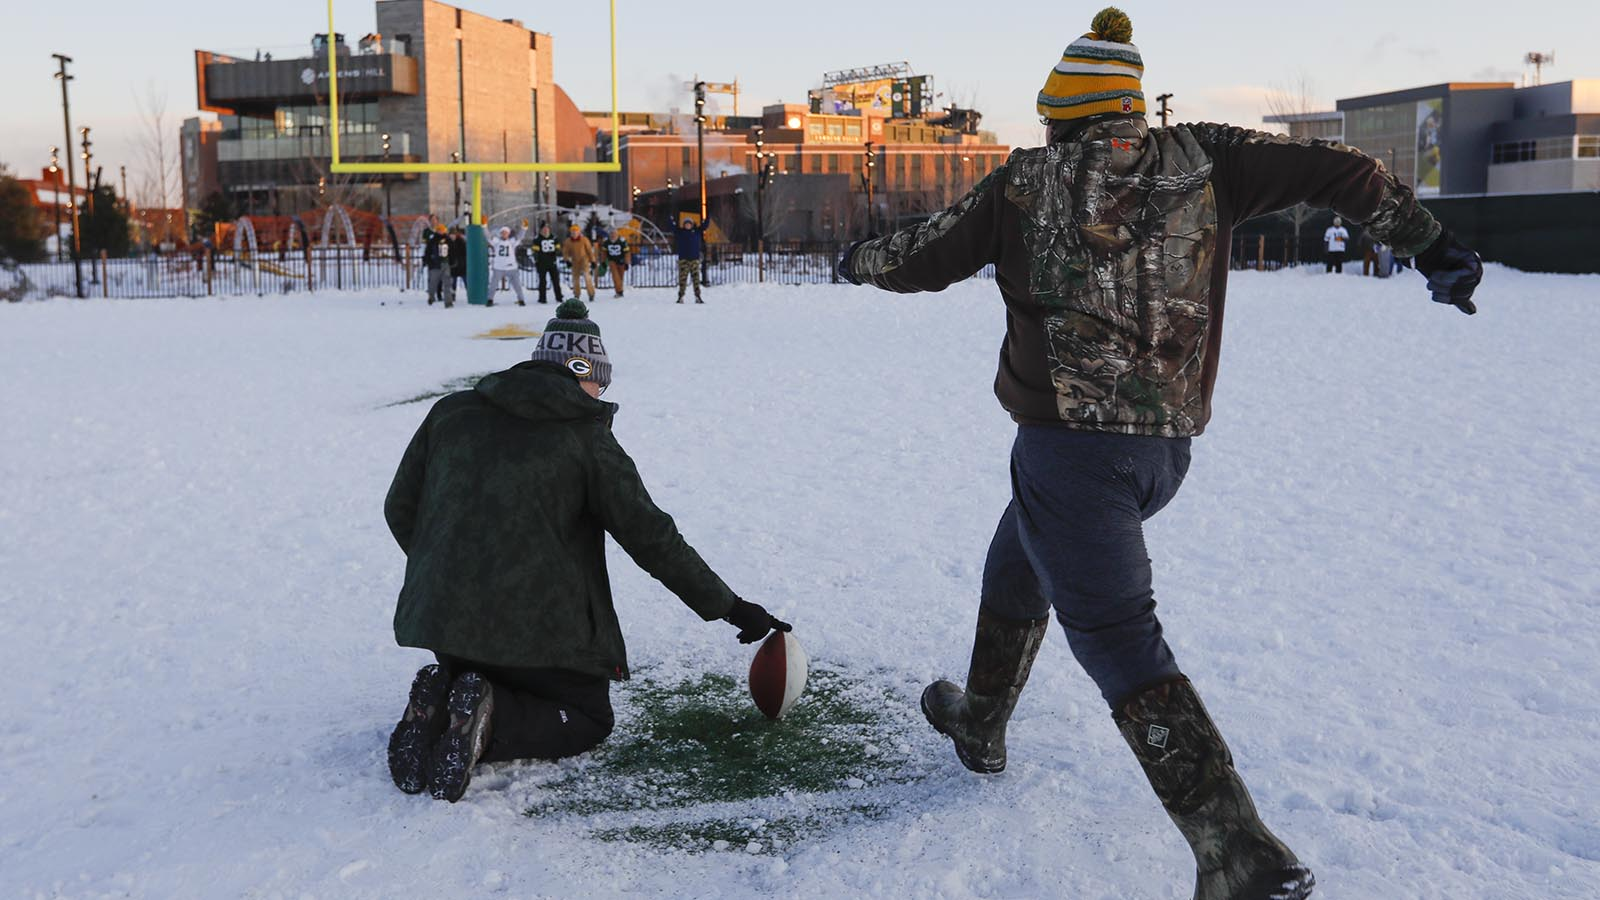 Fans play football near Lambeau Field before an NFL football game between the Green Bay Packers and the Minnesota Vikings Saturday, Dec. 23, 2017, in Green Bay, Wis. (AP Photo/Mike Roemer)